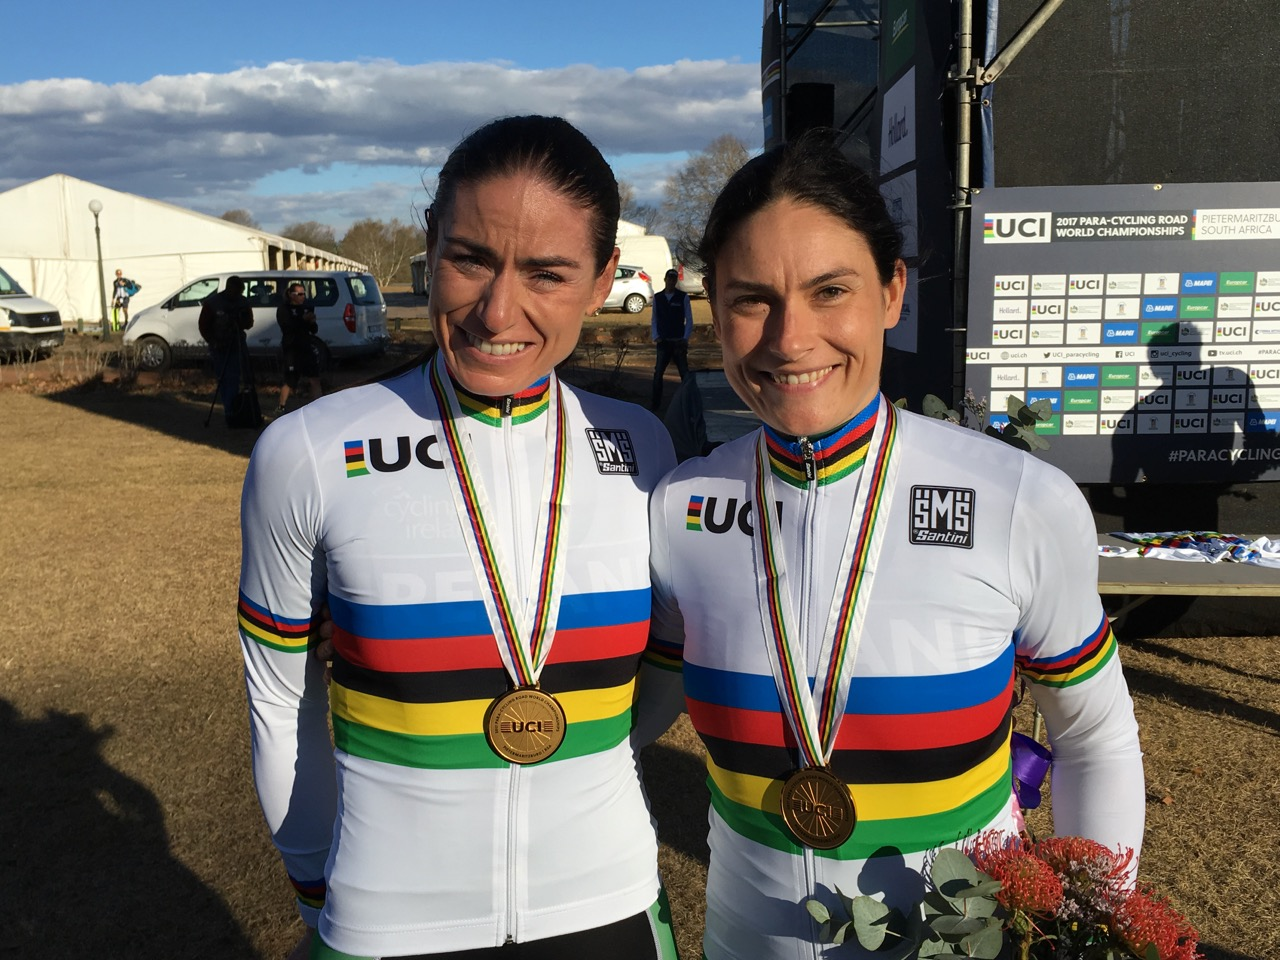 Team Ireland's Eve McCrystal (pilot, left) and Katie-George Dunley proudly wear their gold medals and rainbow jerseys after winning the Women's Visually Impaired race during the Time Trial on Day 2 of the 2017 UCI Para-cycling Road World Championships held at Midmar Dam Howick, South Africa, on Friday 1 September 2017. Photo credit: Donald Paynter